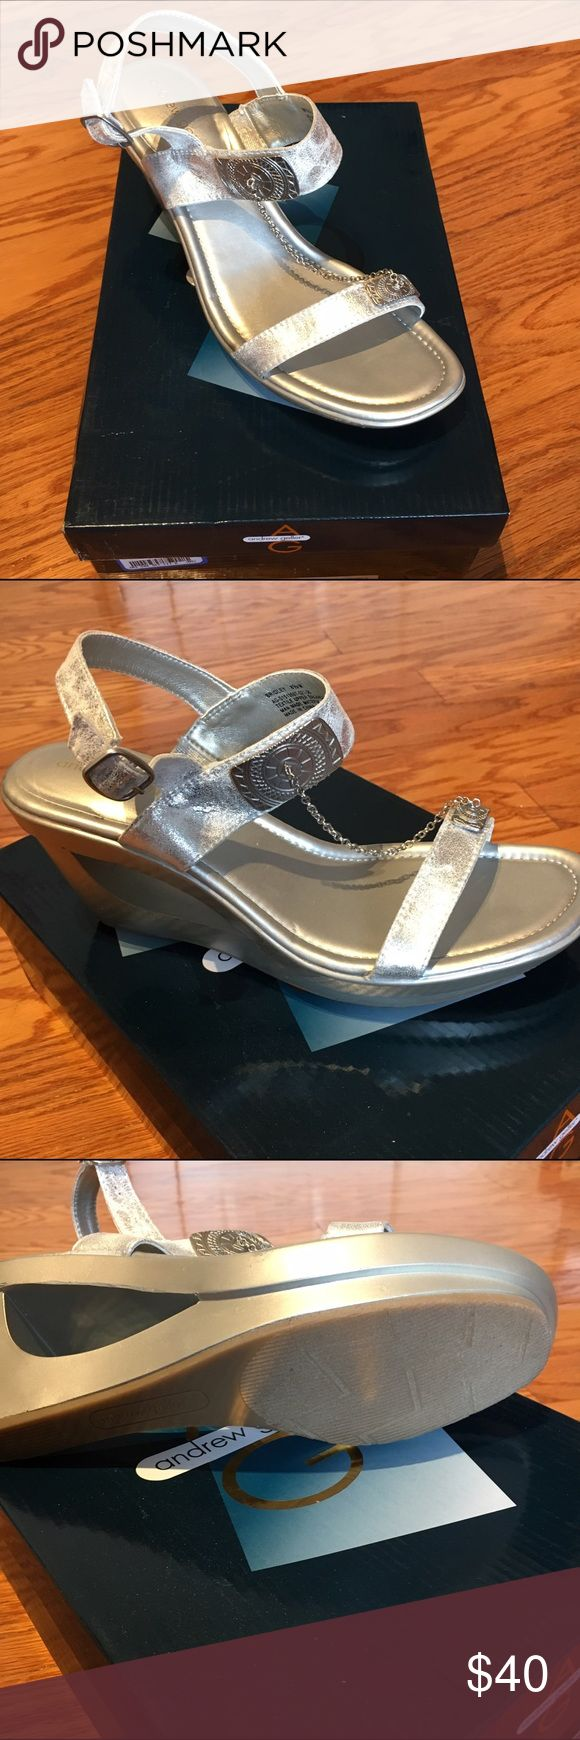 Silver wedge sandals 💗 Silver wedge sandal with chain accent toe to ankle band. New in Box! Andrew Geller Shoes Wedges